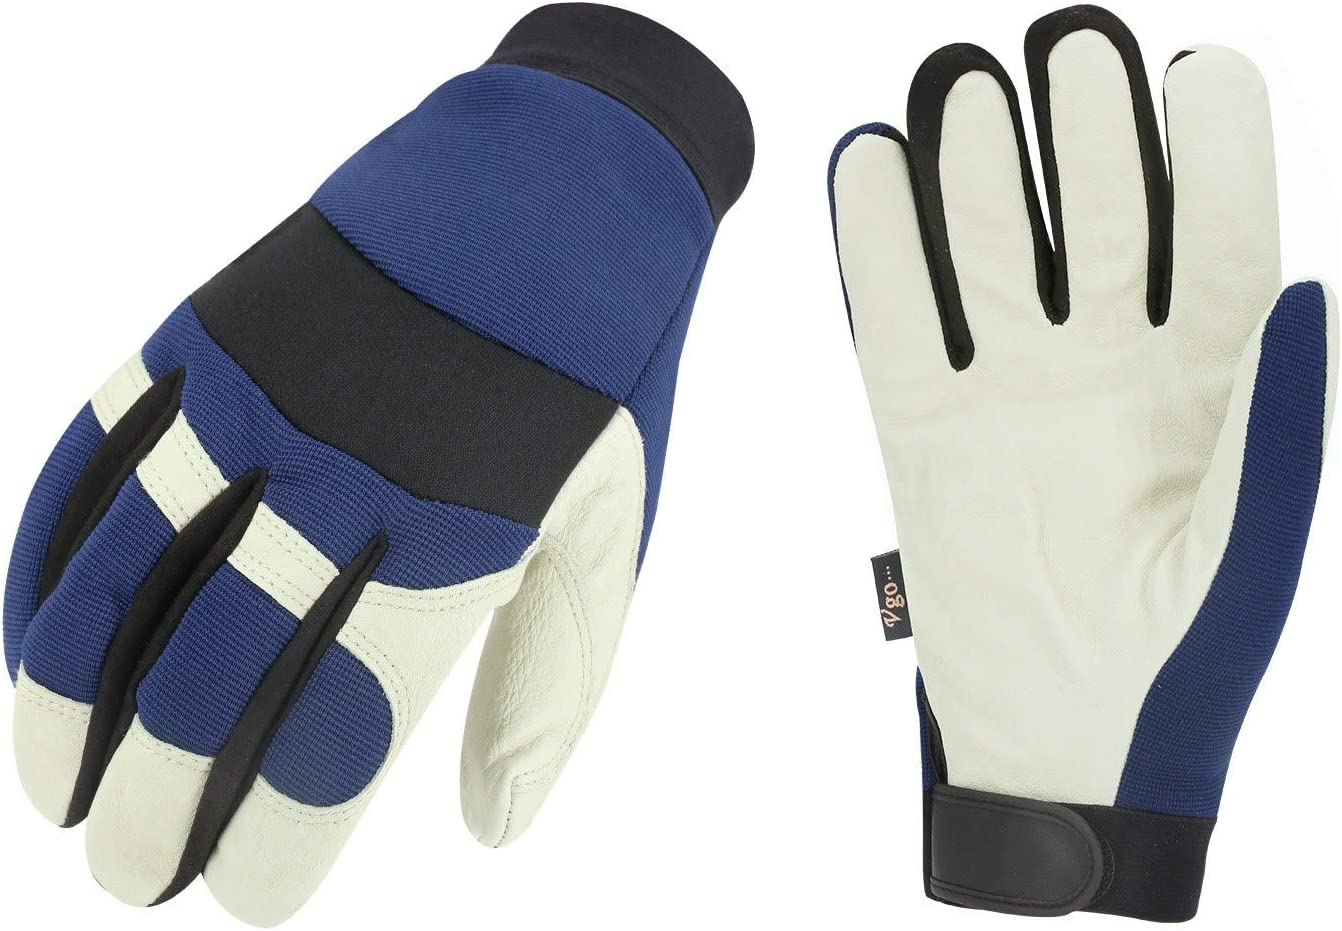 Vgo 3Pairs 32? or above 3M Thinsulate C40 Lined Pigskin Leather Warm Winter Cold Storage Frozen Safety Working Gloves(Size XL,Blue,PA7620F)